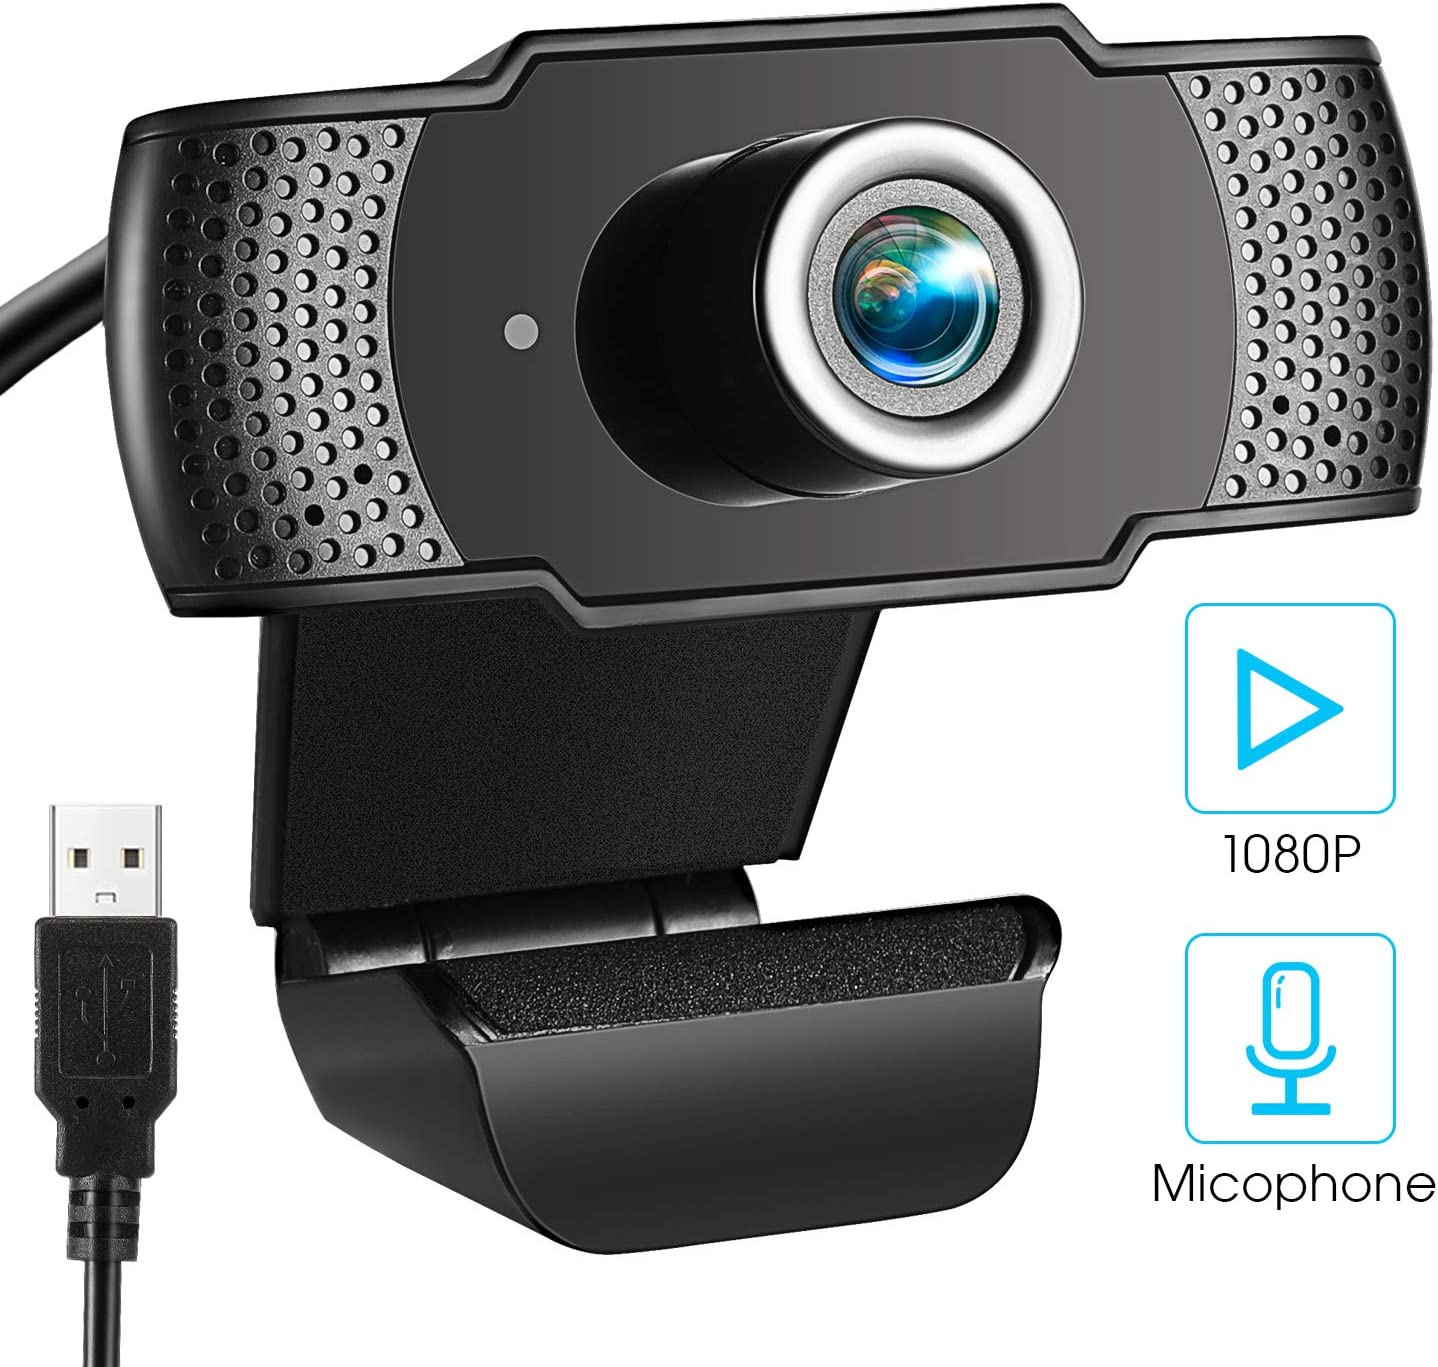 1080P Webcam with Microphone, Full HD Streaming Webcam Desktop Computer Camera Widescreen USB Camera Auto Light Correction Fixed Focus for Skype/YouTube/Zoom/Facetime Video Conferencing, Recording